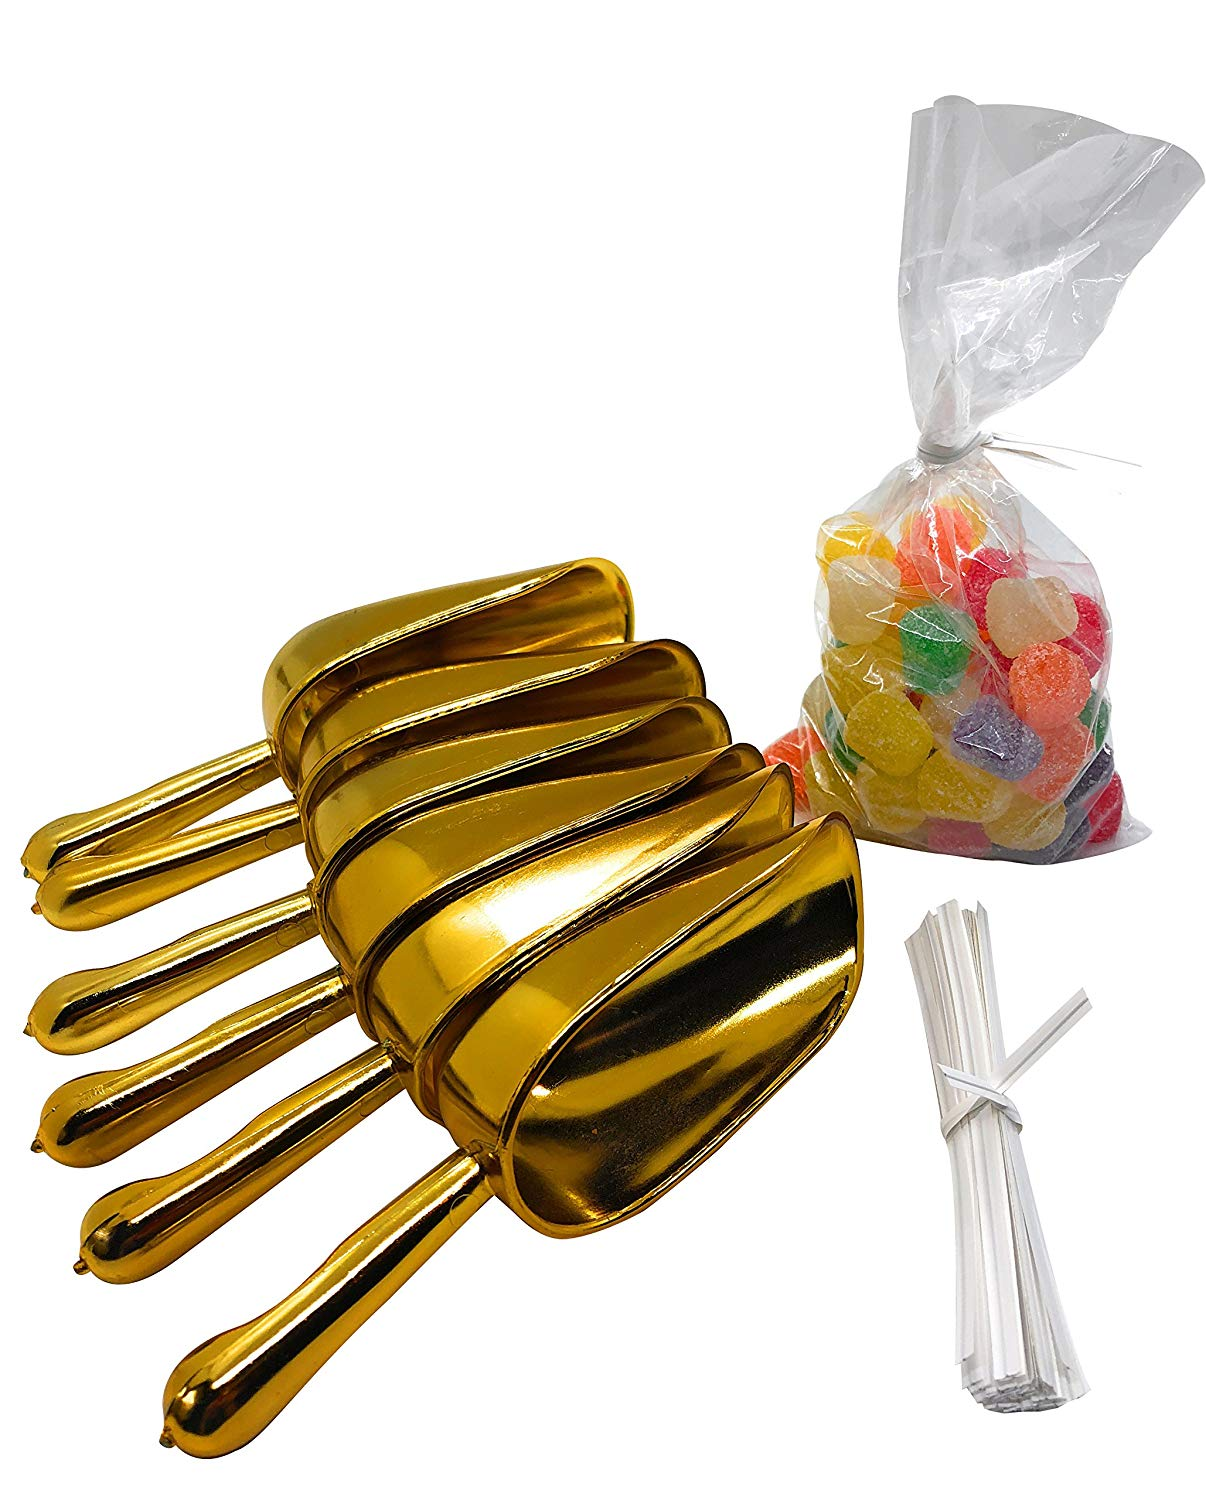 Candy Buffet Supplies: Set of Candy Buffet Scoops and Candy Buffet Bags with Twist Ties (6 Gold Scoops, 50 Clear Bags, Gold)